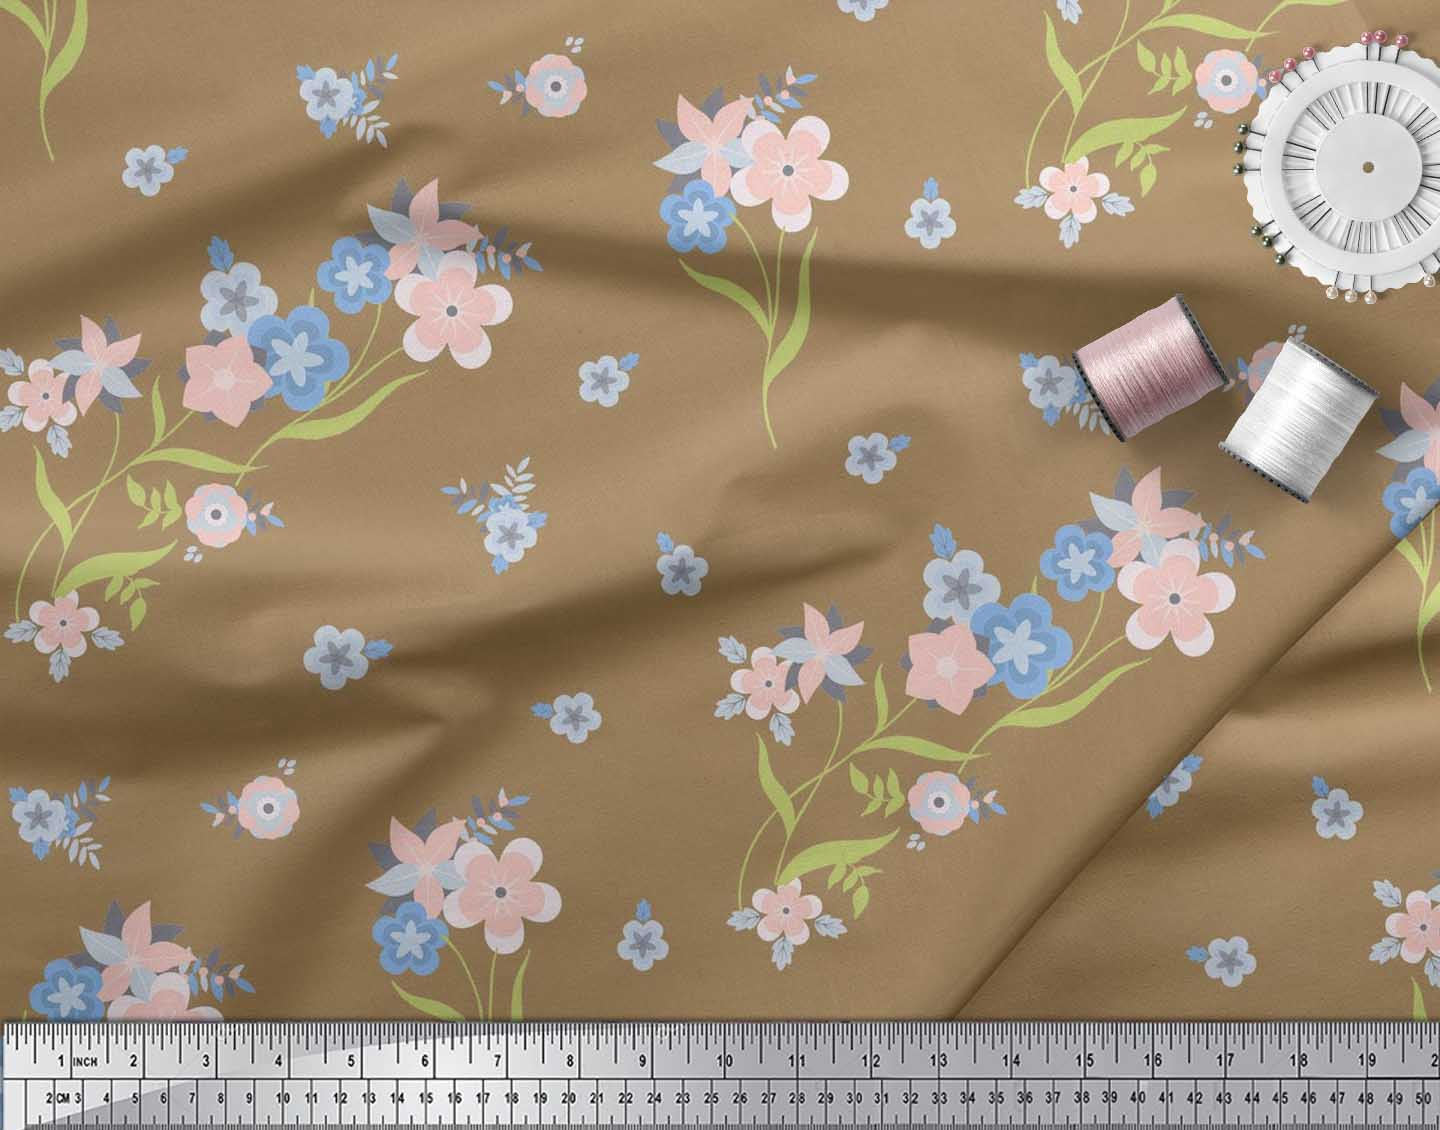 Soimoi-Cotton-Poplin-Fabric-Leaves-amp-Periwinkle-Floral-Print-Sewing-Ogt thumbnail 3